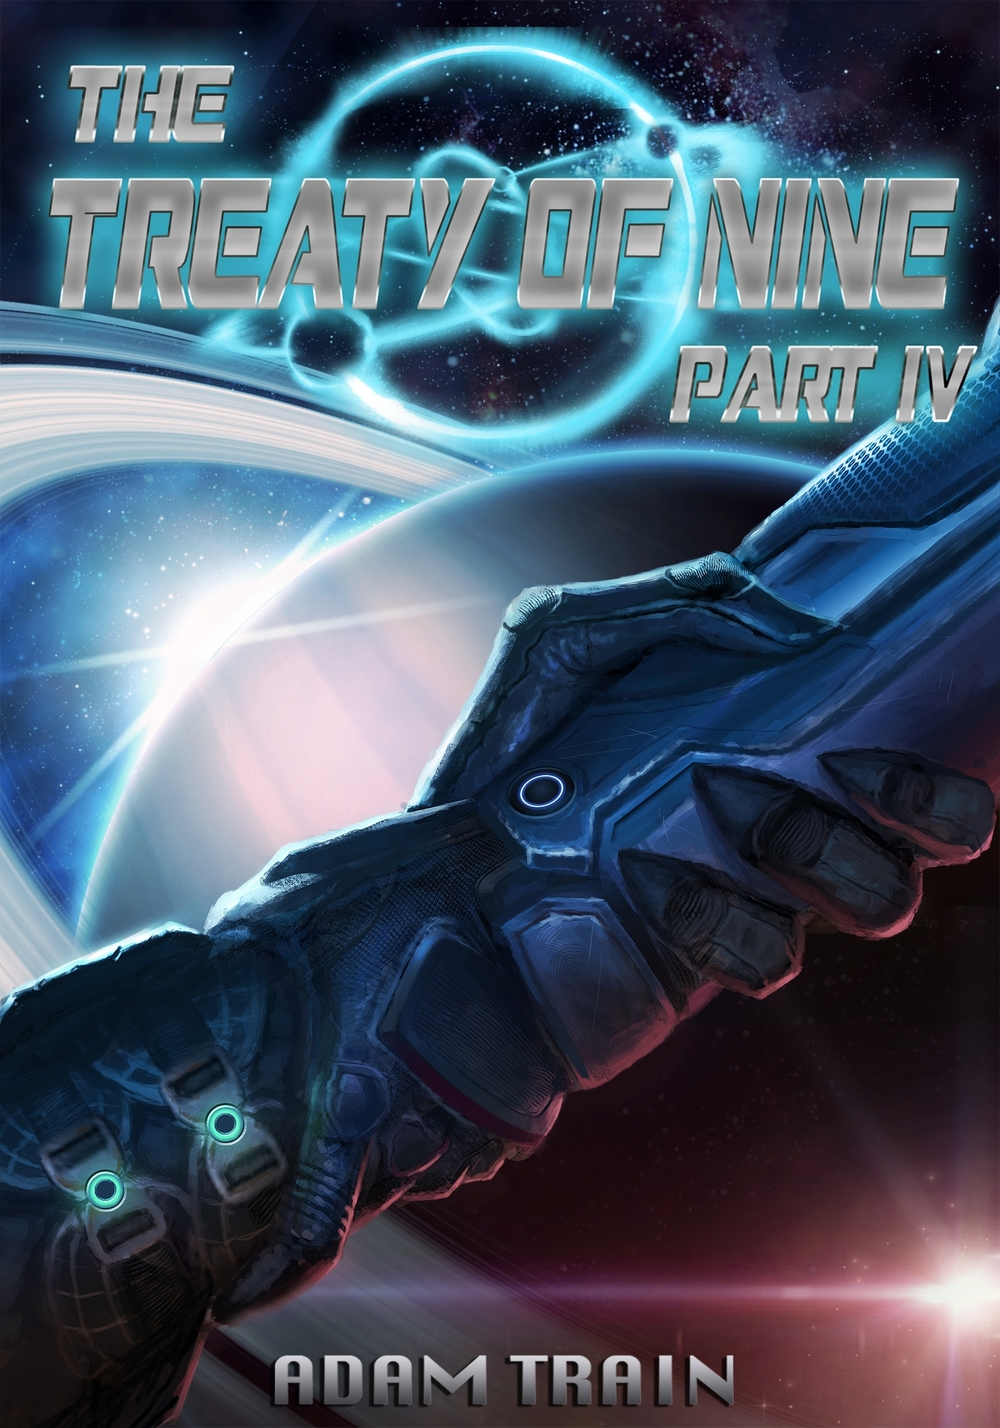 PART IV This sprawling space tale concludes with Part IV. Ten years after the war, a growing threat to the treaty opens old battle wounds and drags an unsuspecting bunch into the struggle for peace.